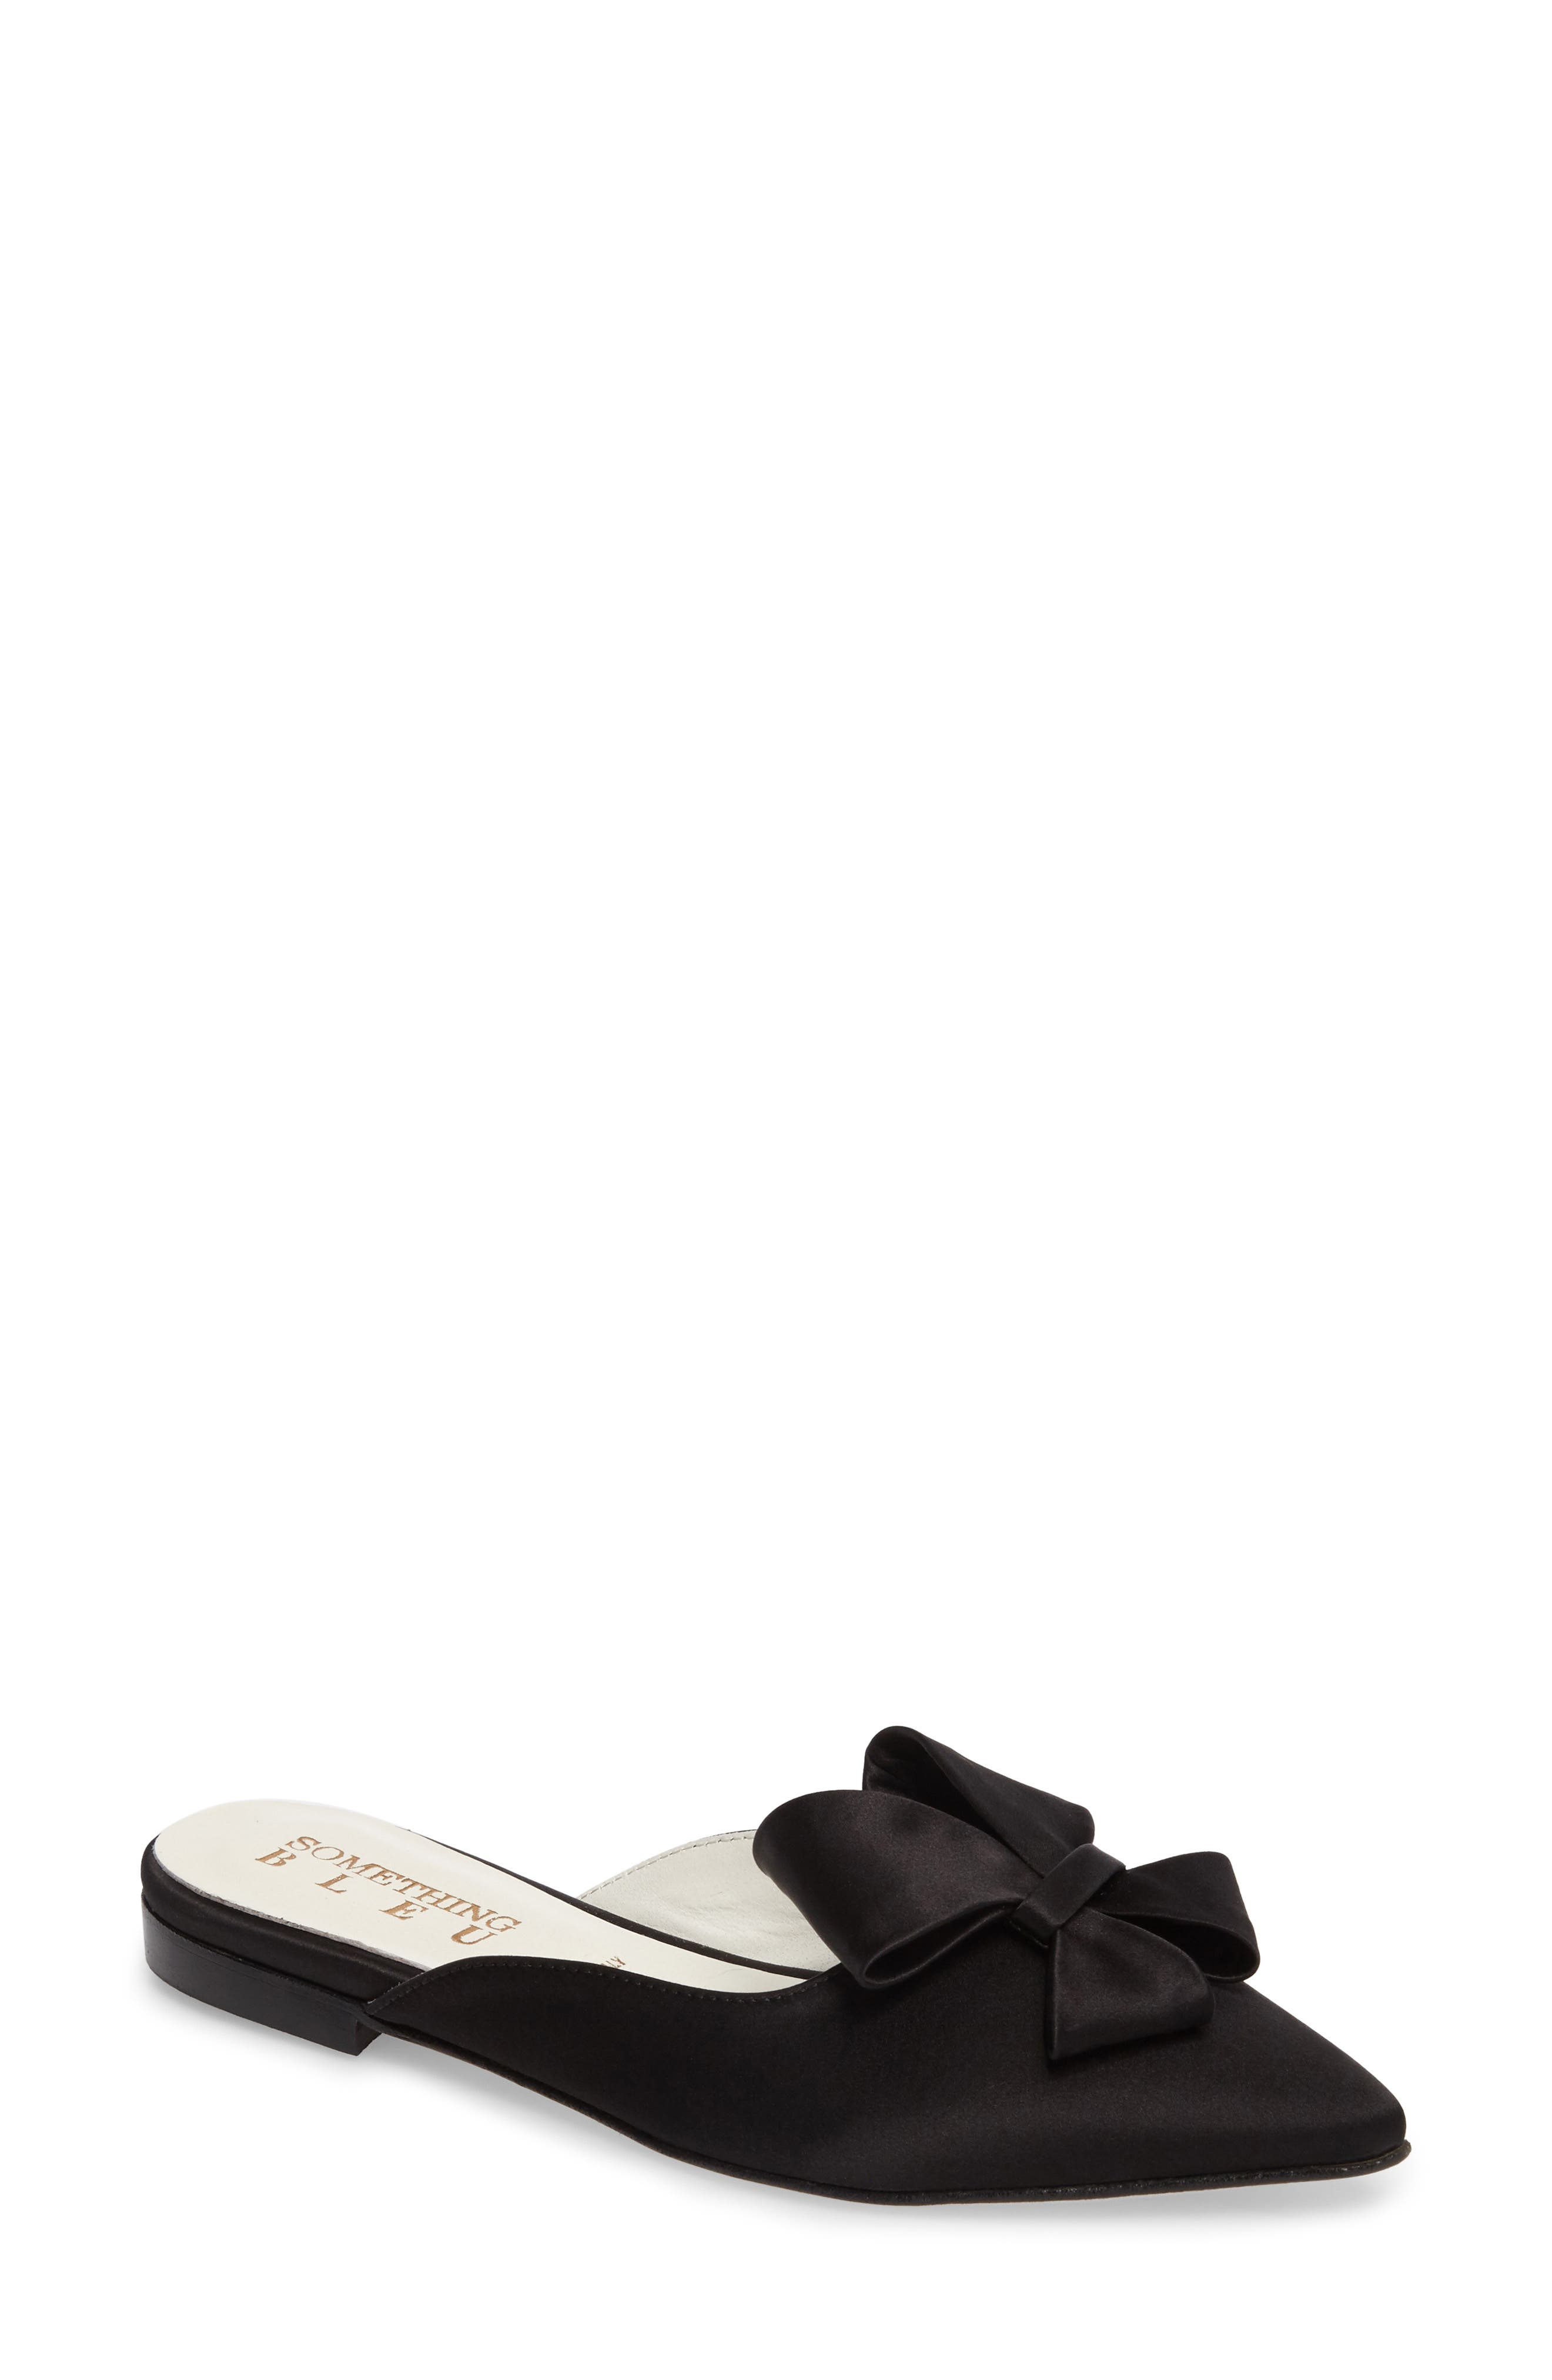 Prince Bow Loafer Mule,                         Main,                         color, BLACK SATIN